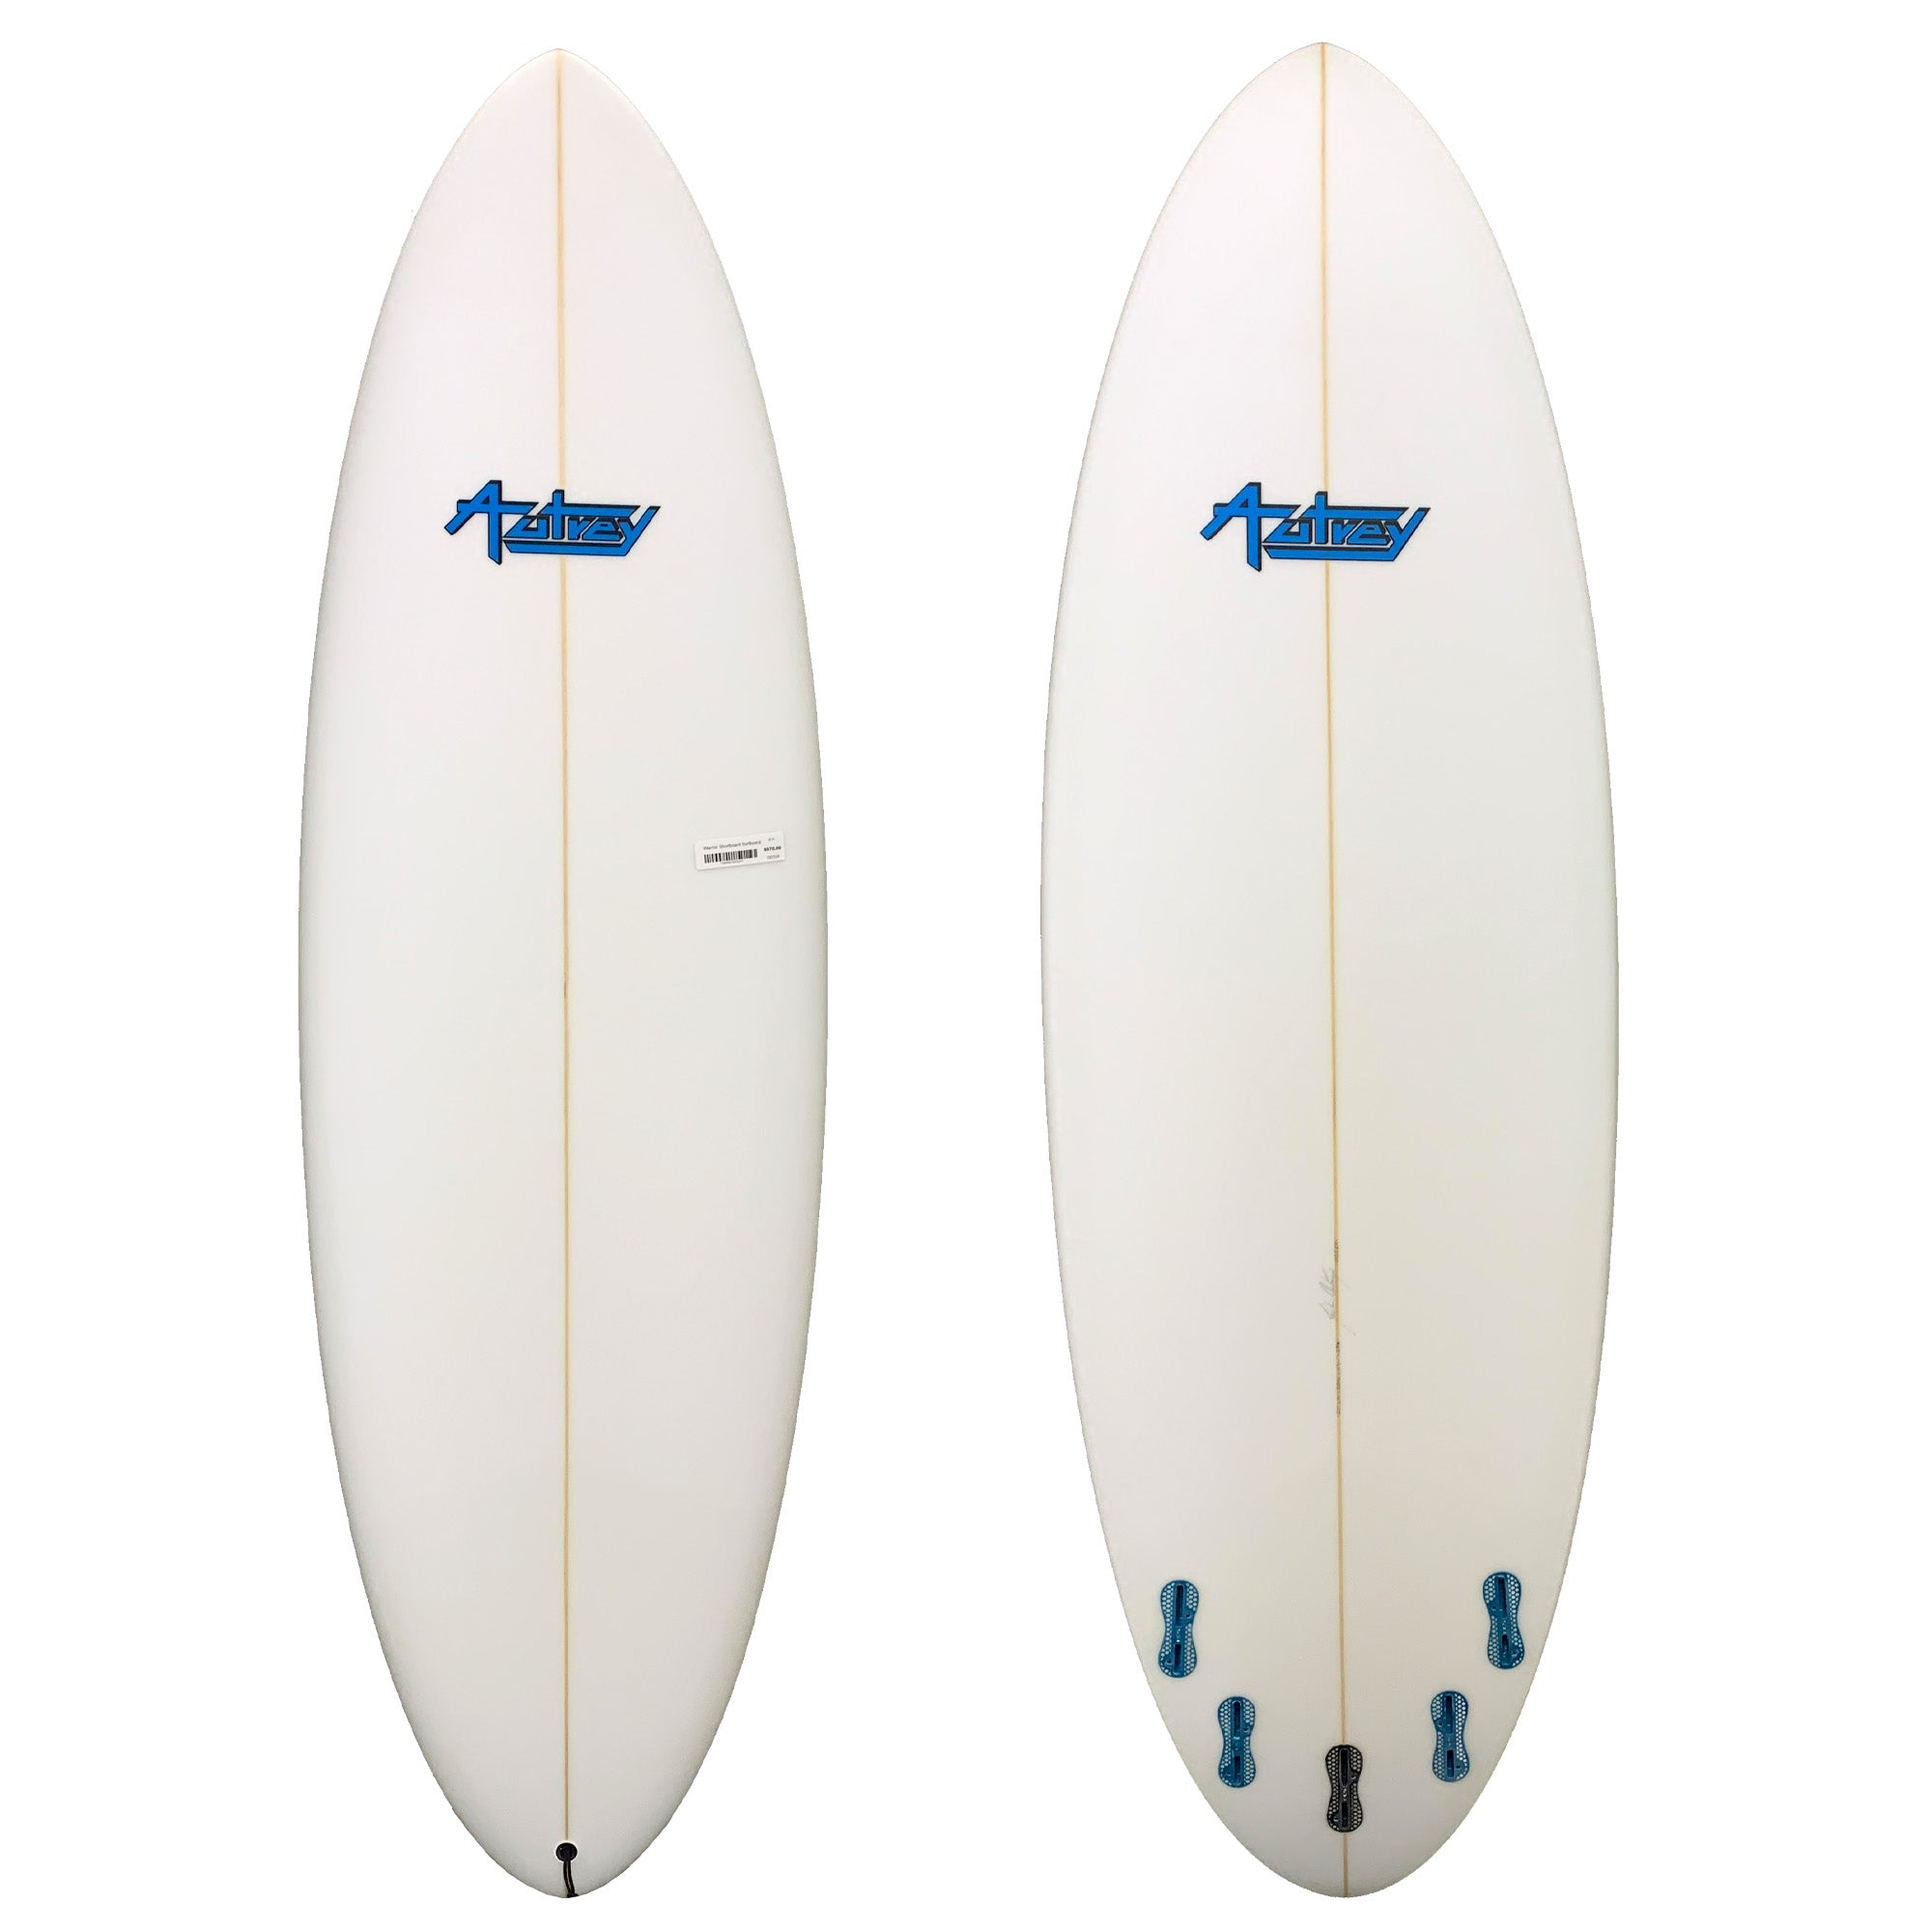 Warrior Shortboard Surfboard